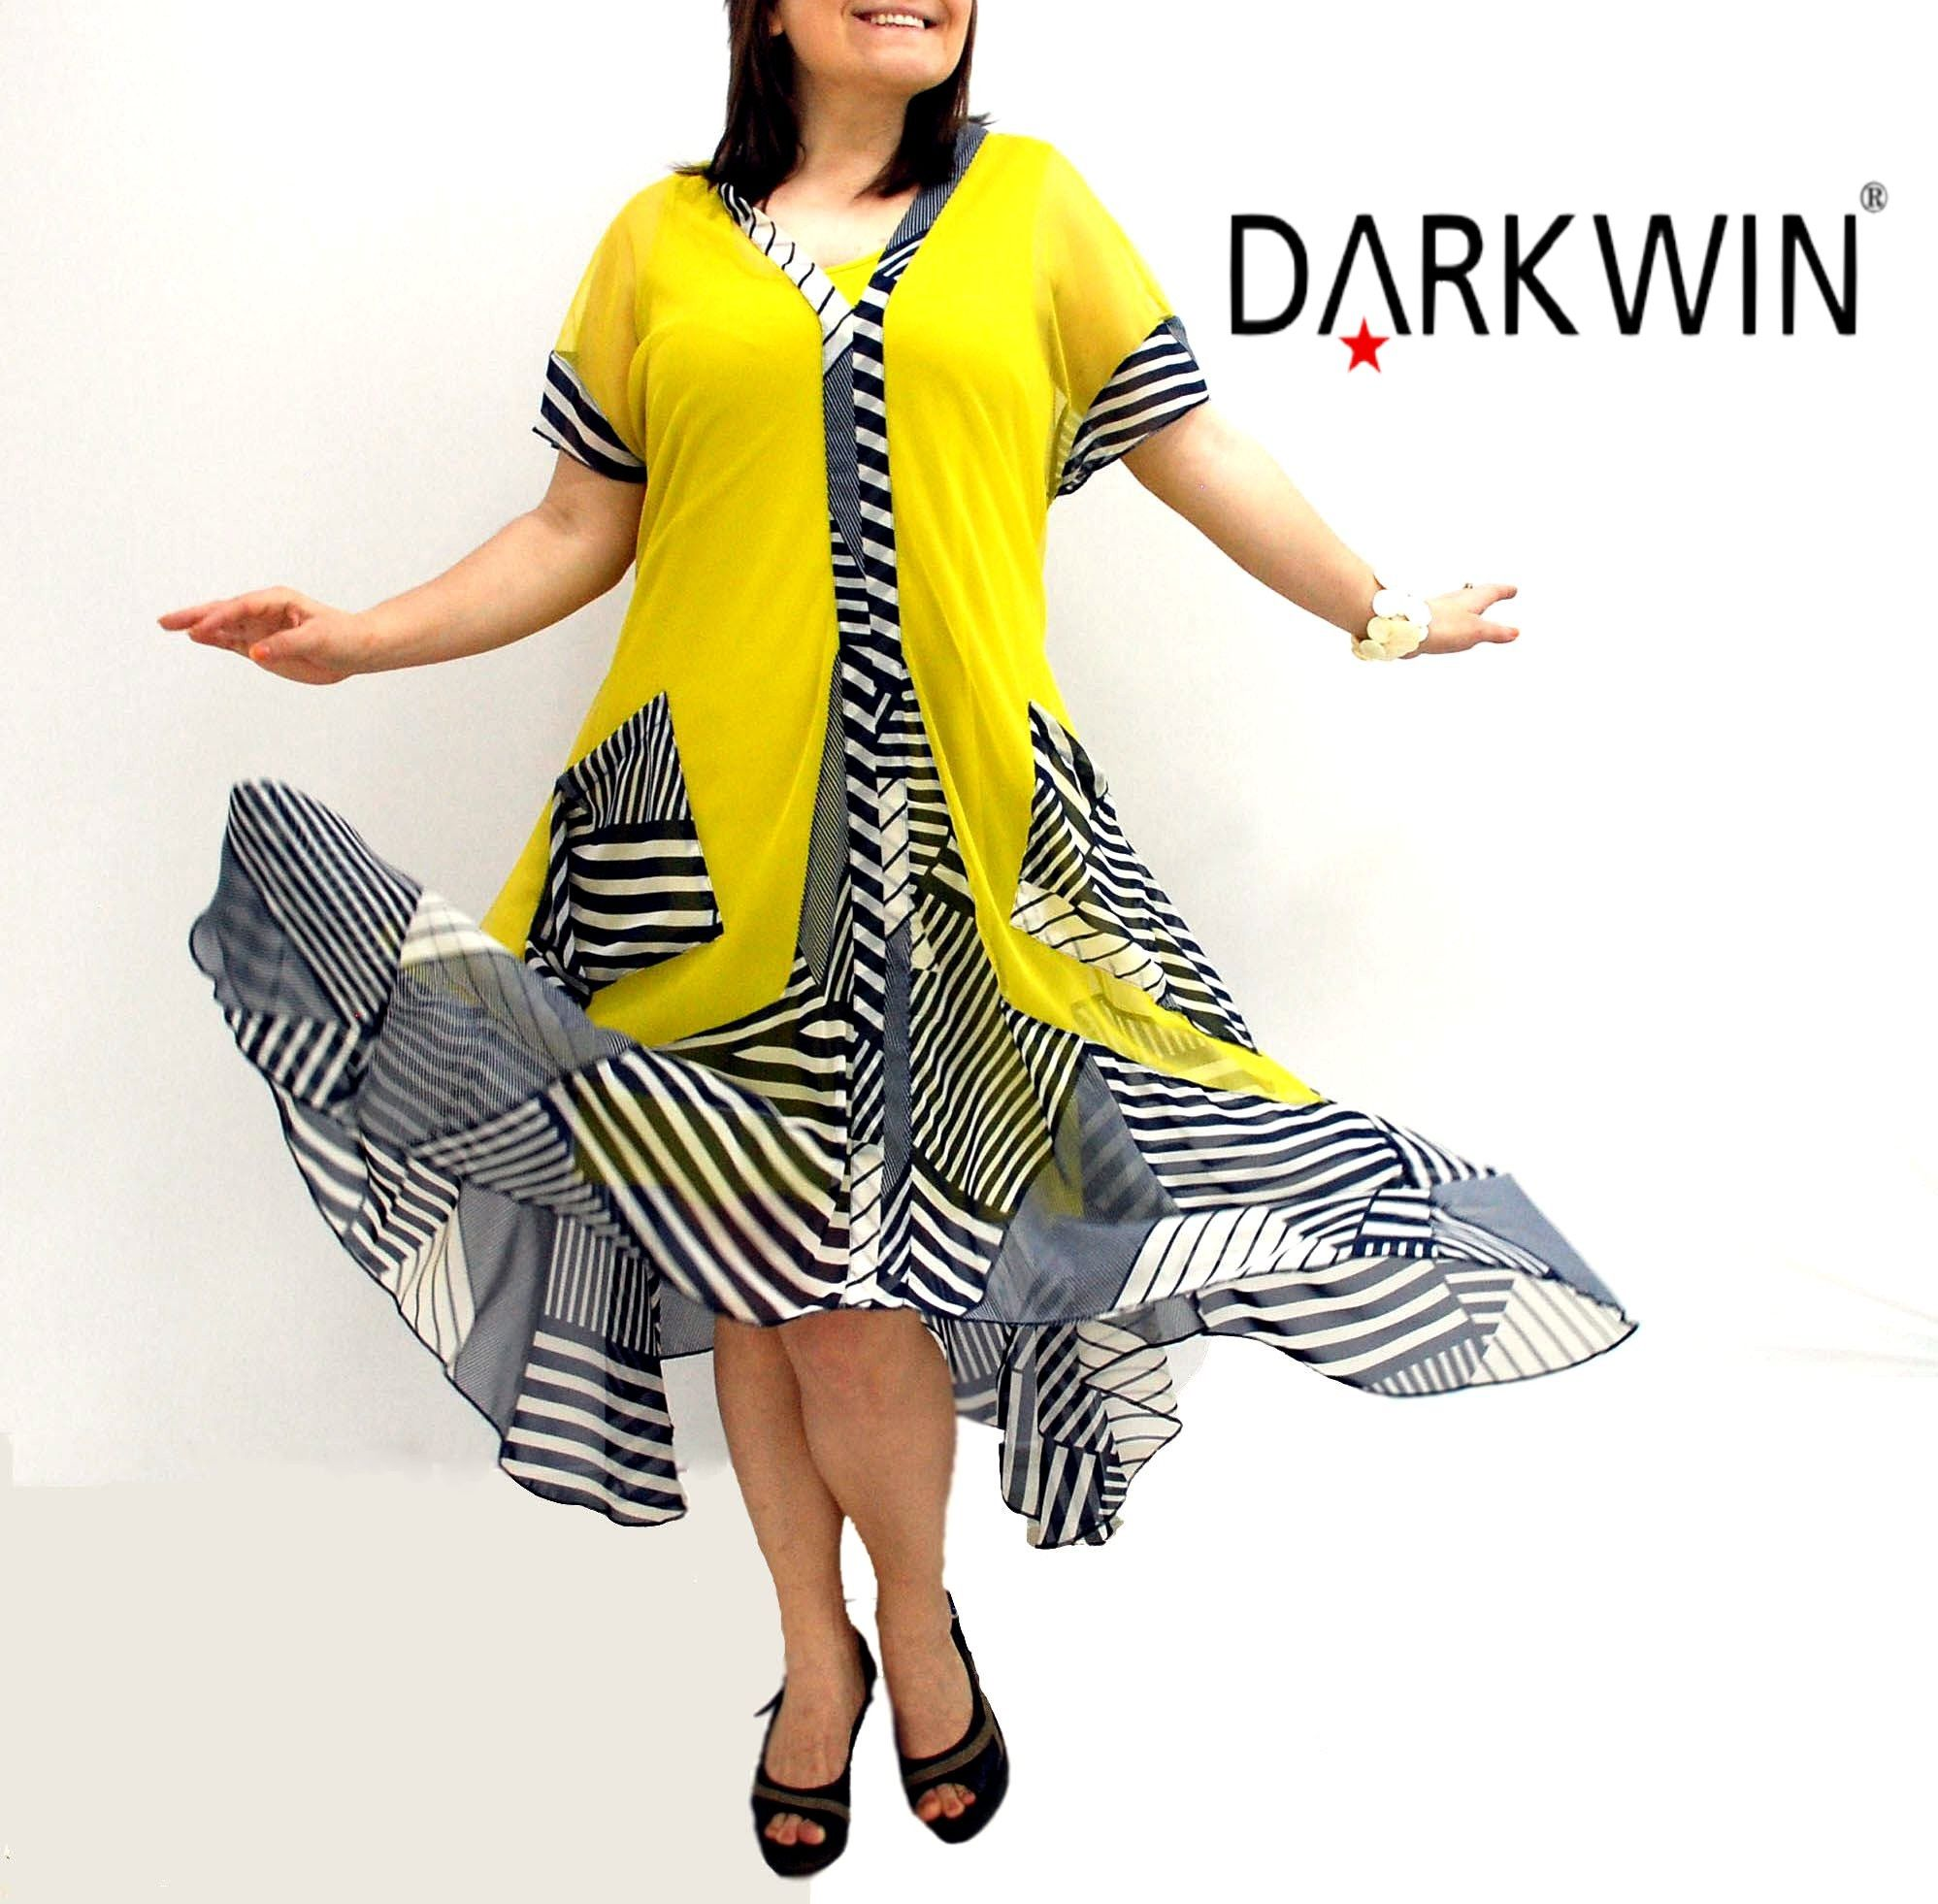 e7f4ae5c2 Lovely weather here in Turkey, and this summer will be great. For you,  DARKWIN collection new model from DARKMEN #turkish_fashion #turkey #fashion